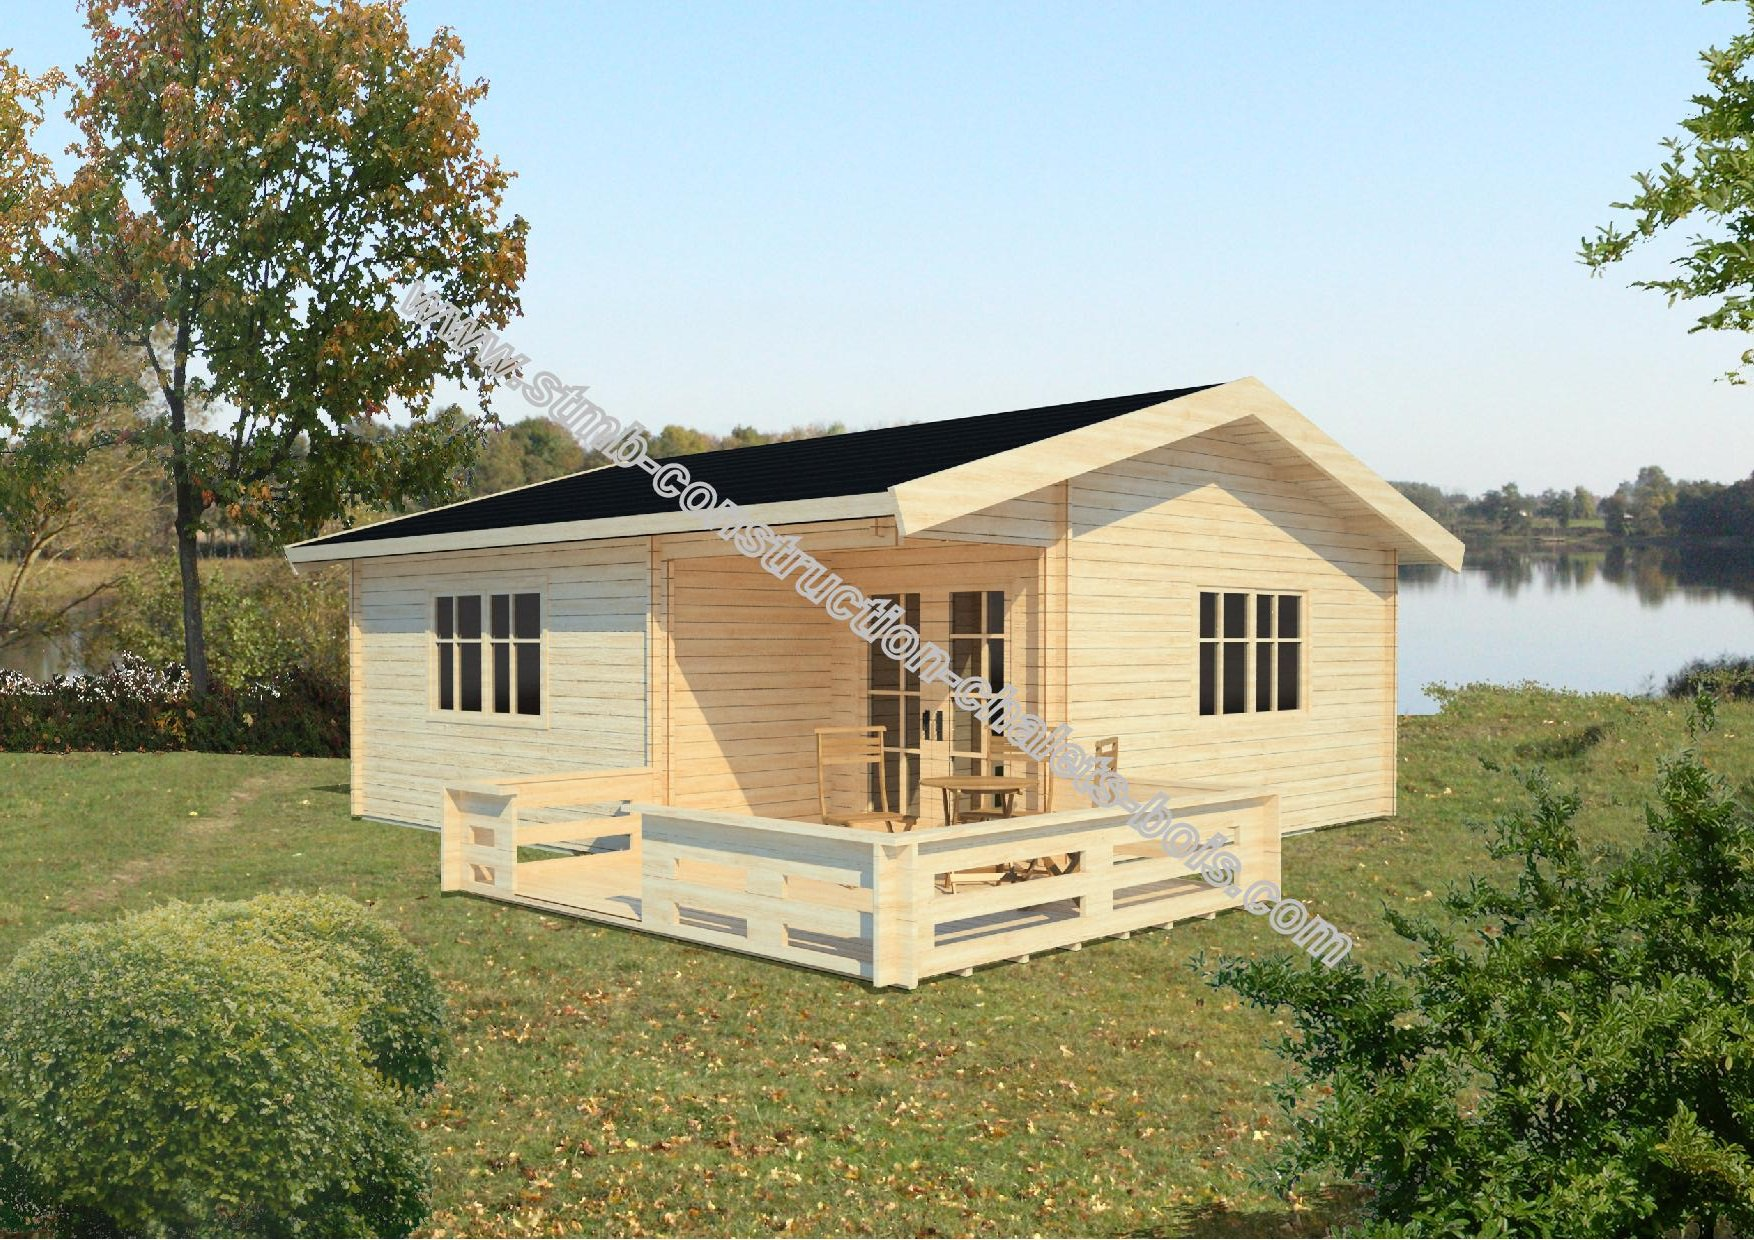 chalet en bois habitable amiens 36 m2 stmb construction. Black Bedroom Furniture Sets. Home Design Ideas